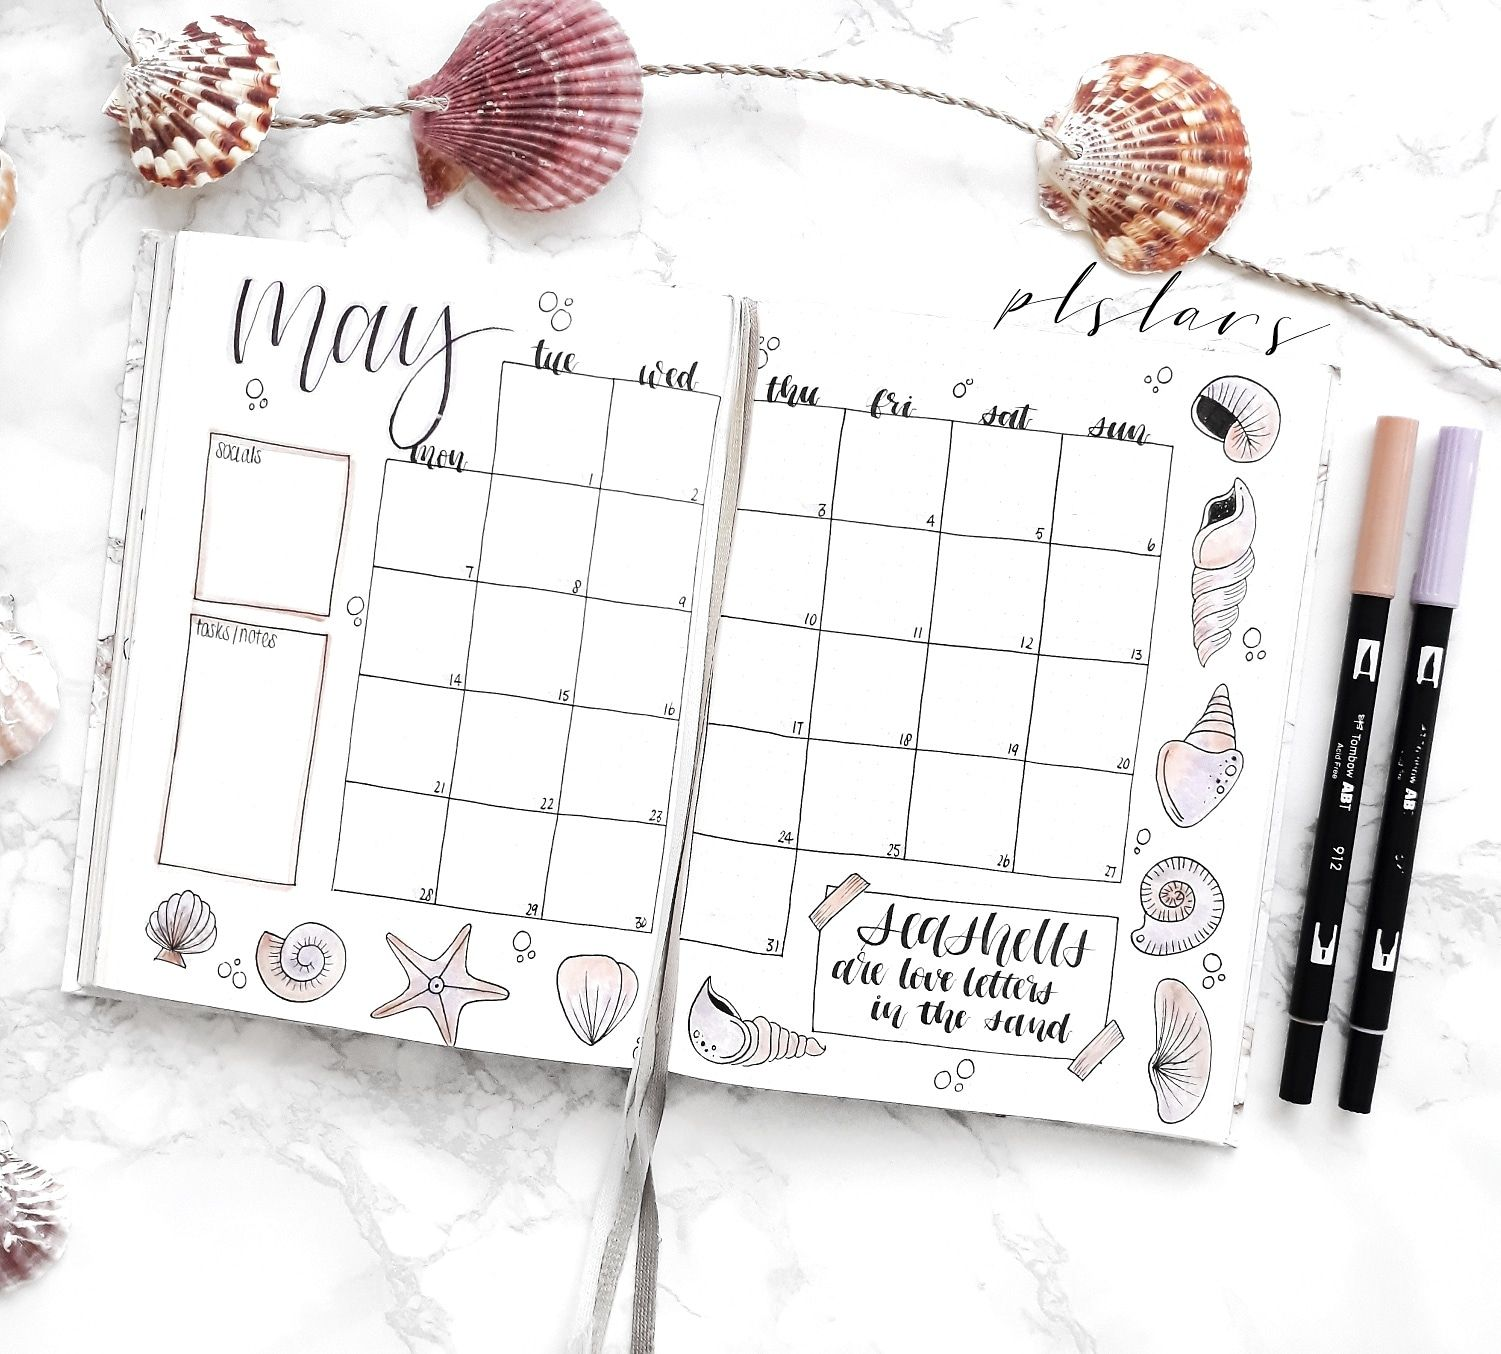 16 MONTHS 2019 WANDERLUST DIARY AND WEEKLY PLANNER Sept 2018 to Dec 2019